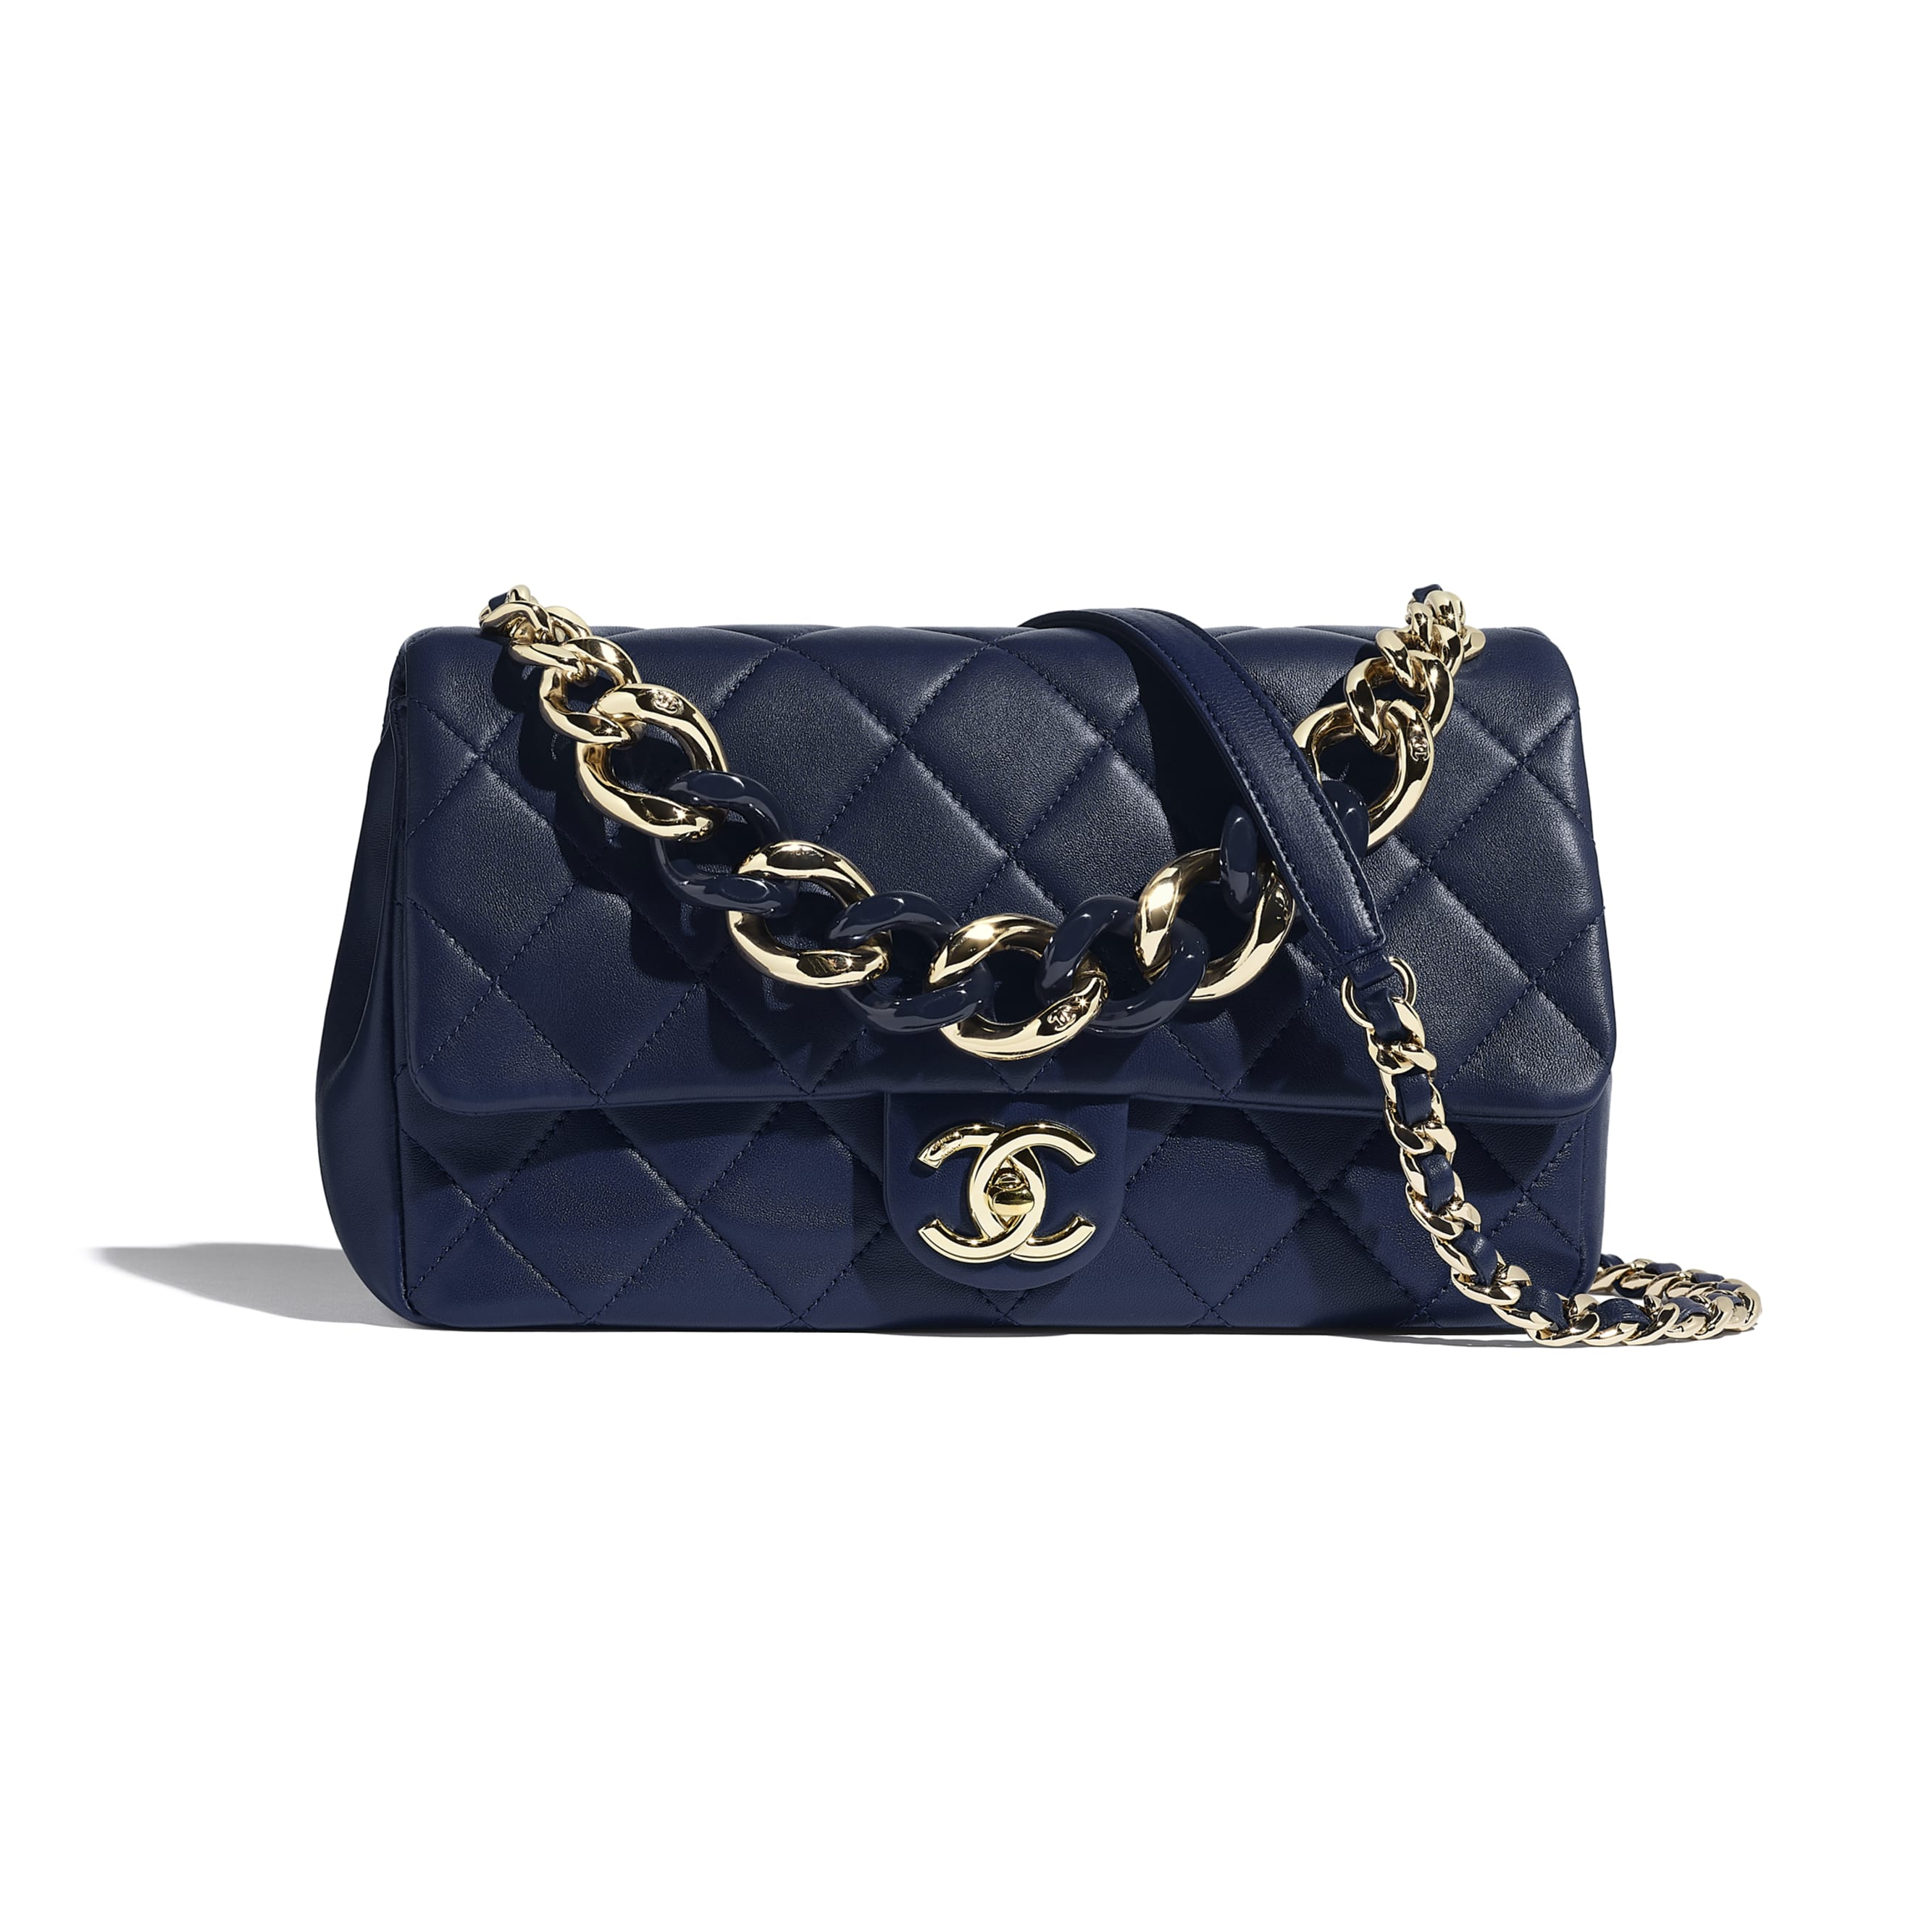 Large Flap Bag - Navy Blue - Lambskin, Resin & Gold-Tone Metal - Default view - see standard sized version